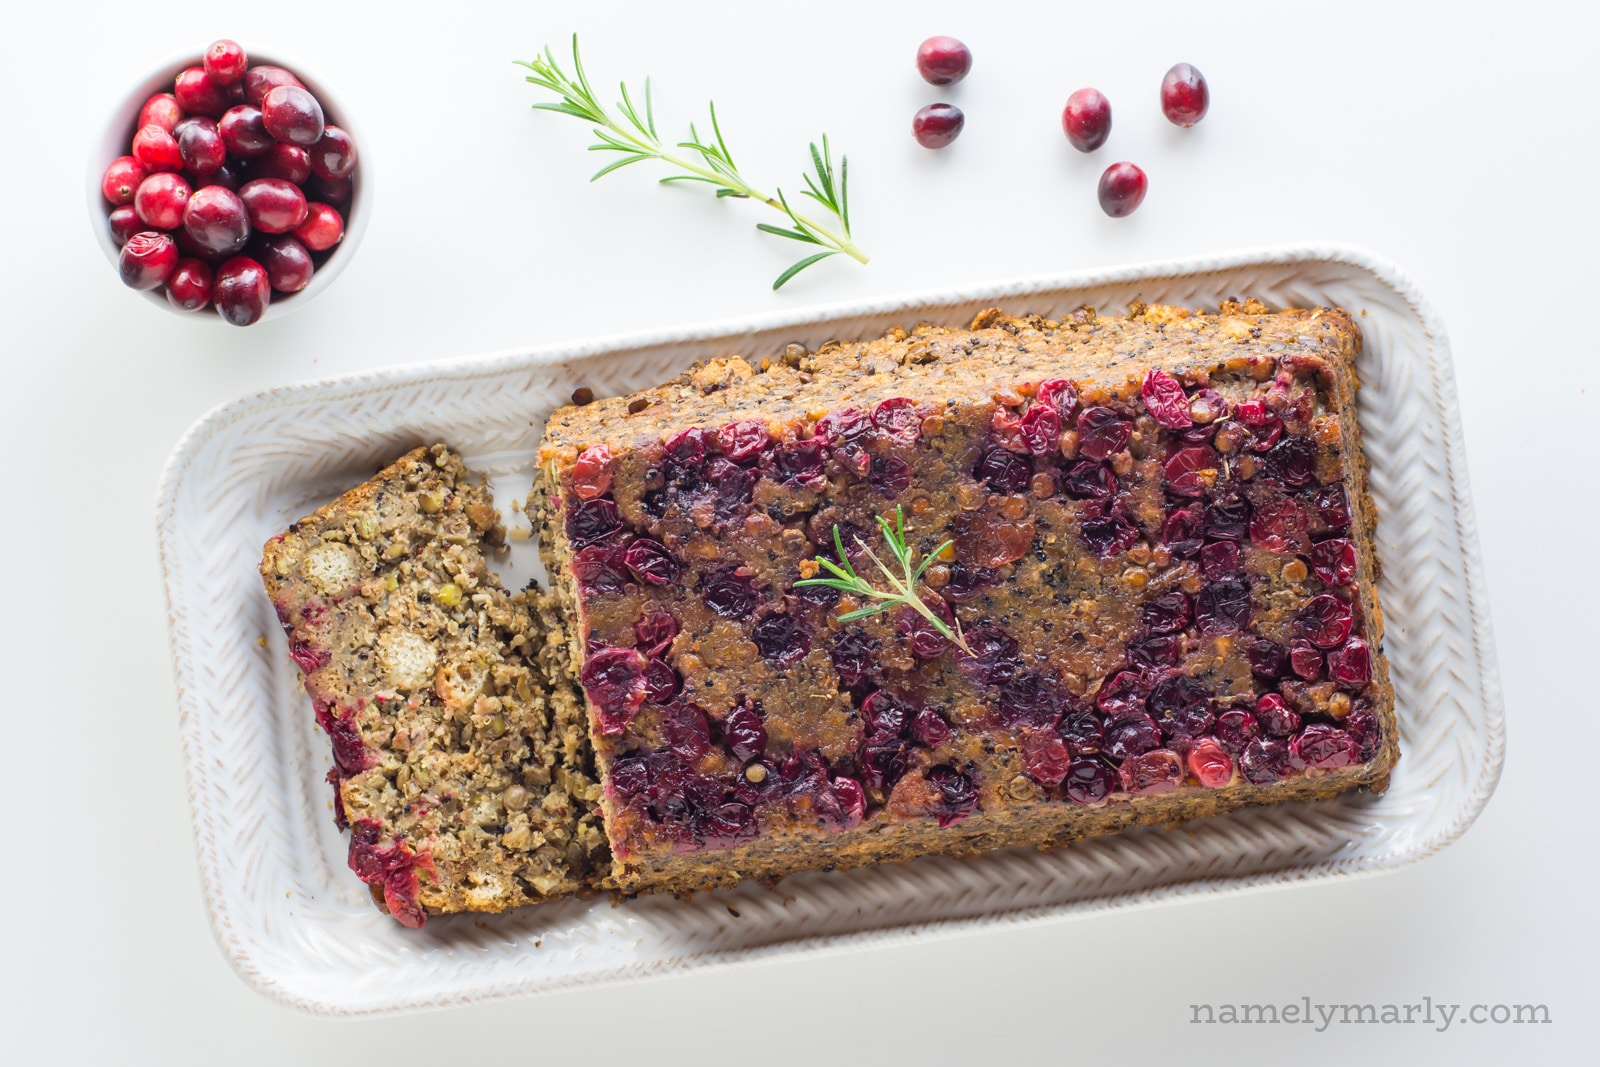 Vegan Holiday Lentil Loaf with stuffing and cranberries